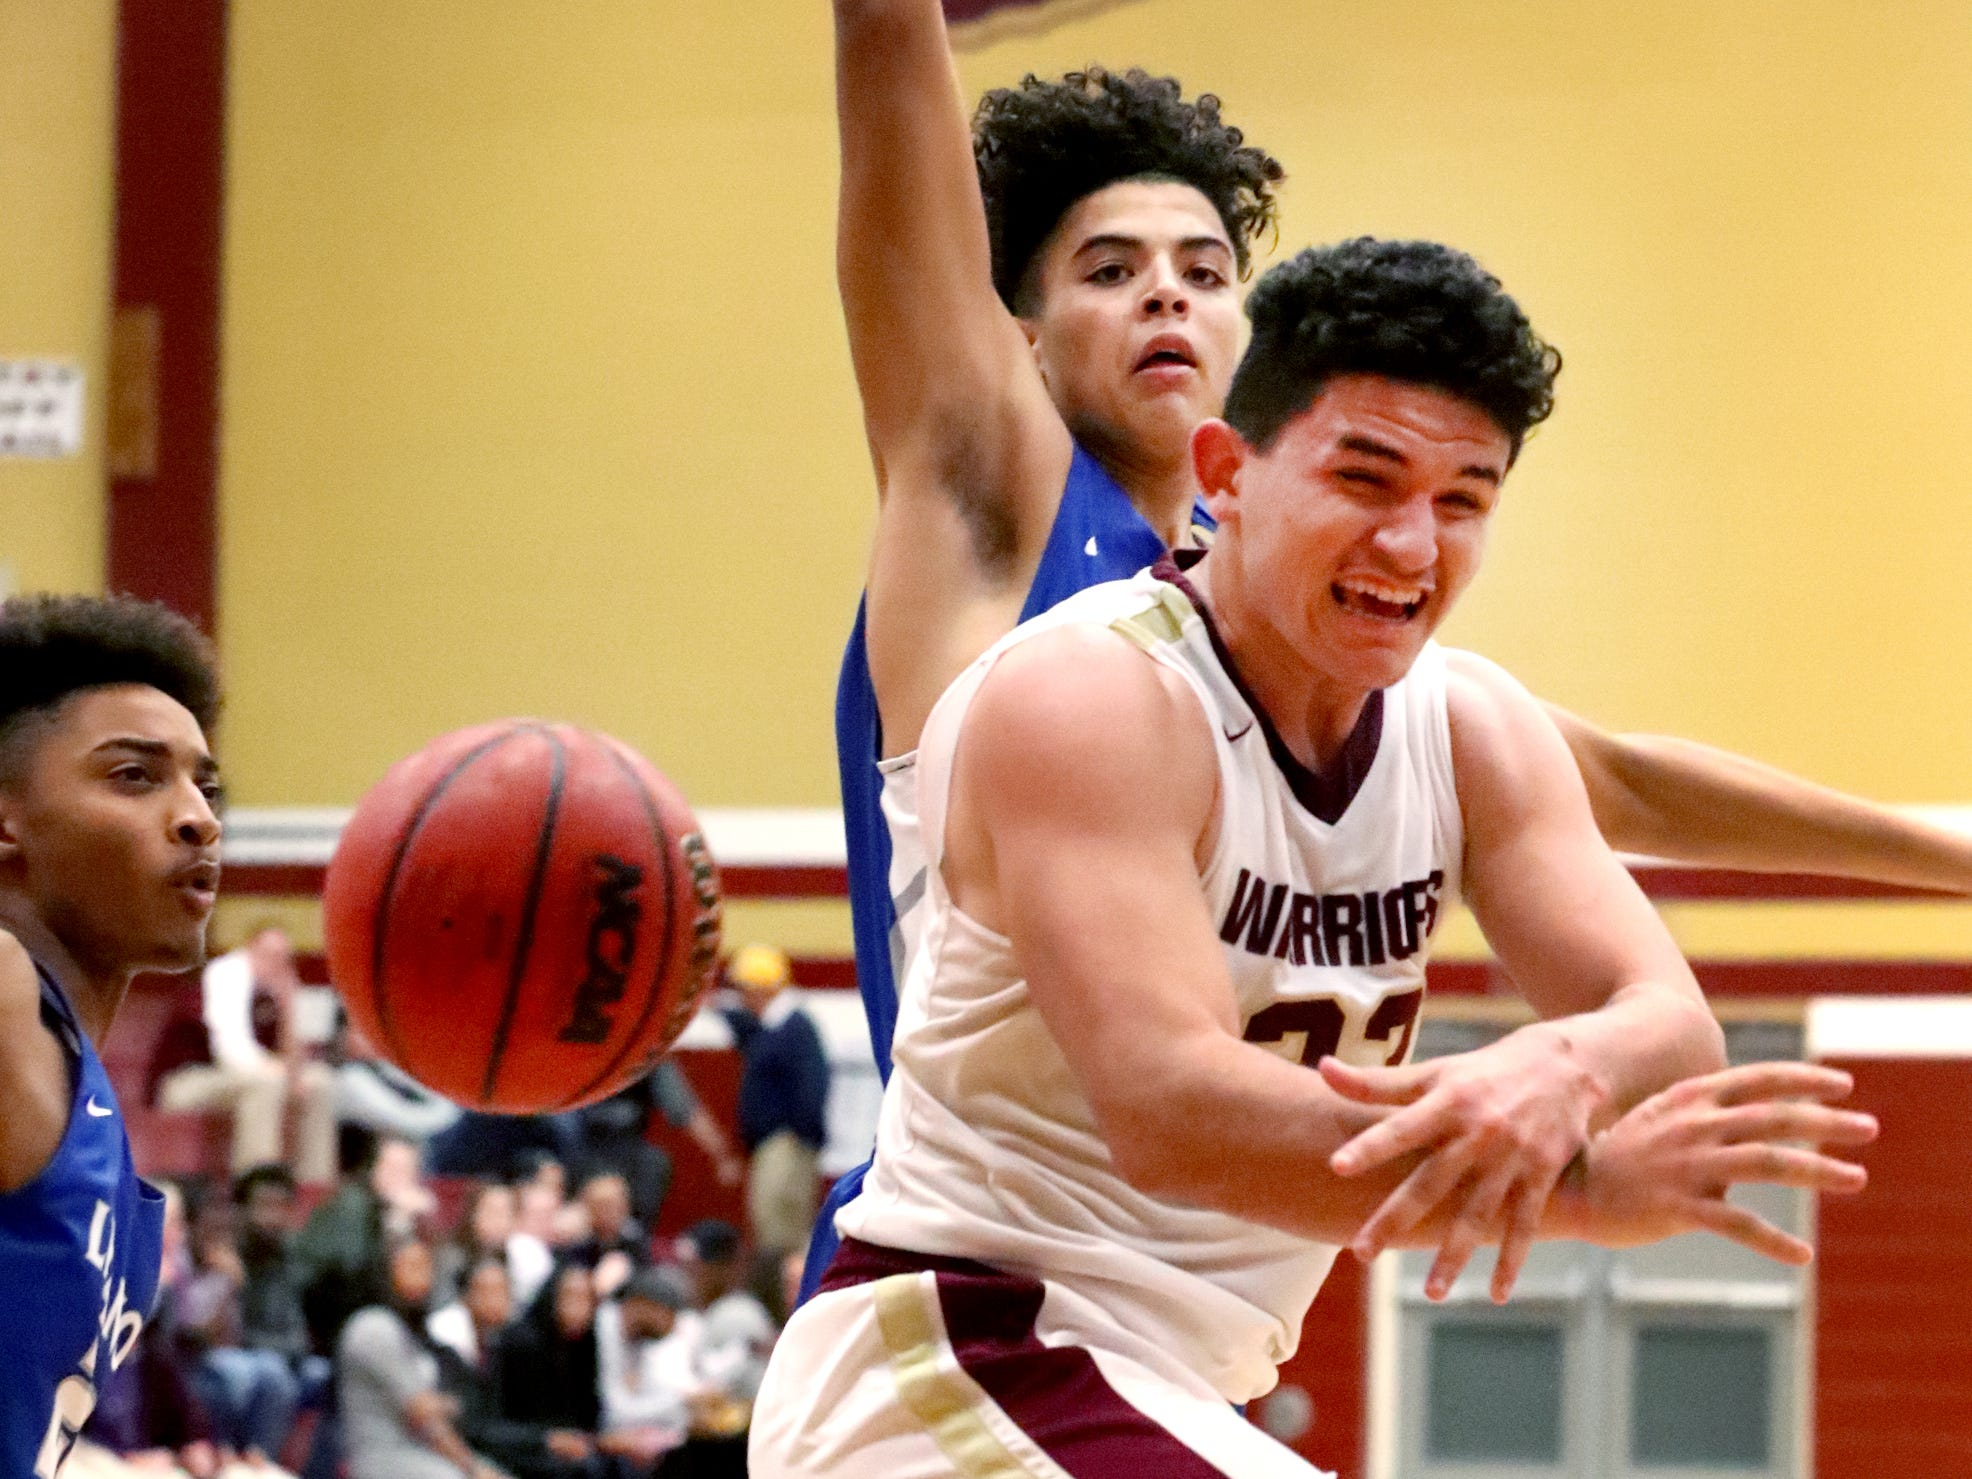 RiverdaleÕs Maliek McAllister (23) passes the ball under the basket  during the game against Lebanon on Friday, Nov. 30, 2018.